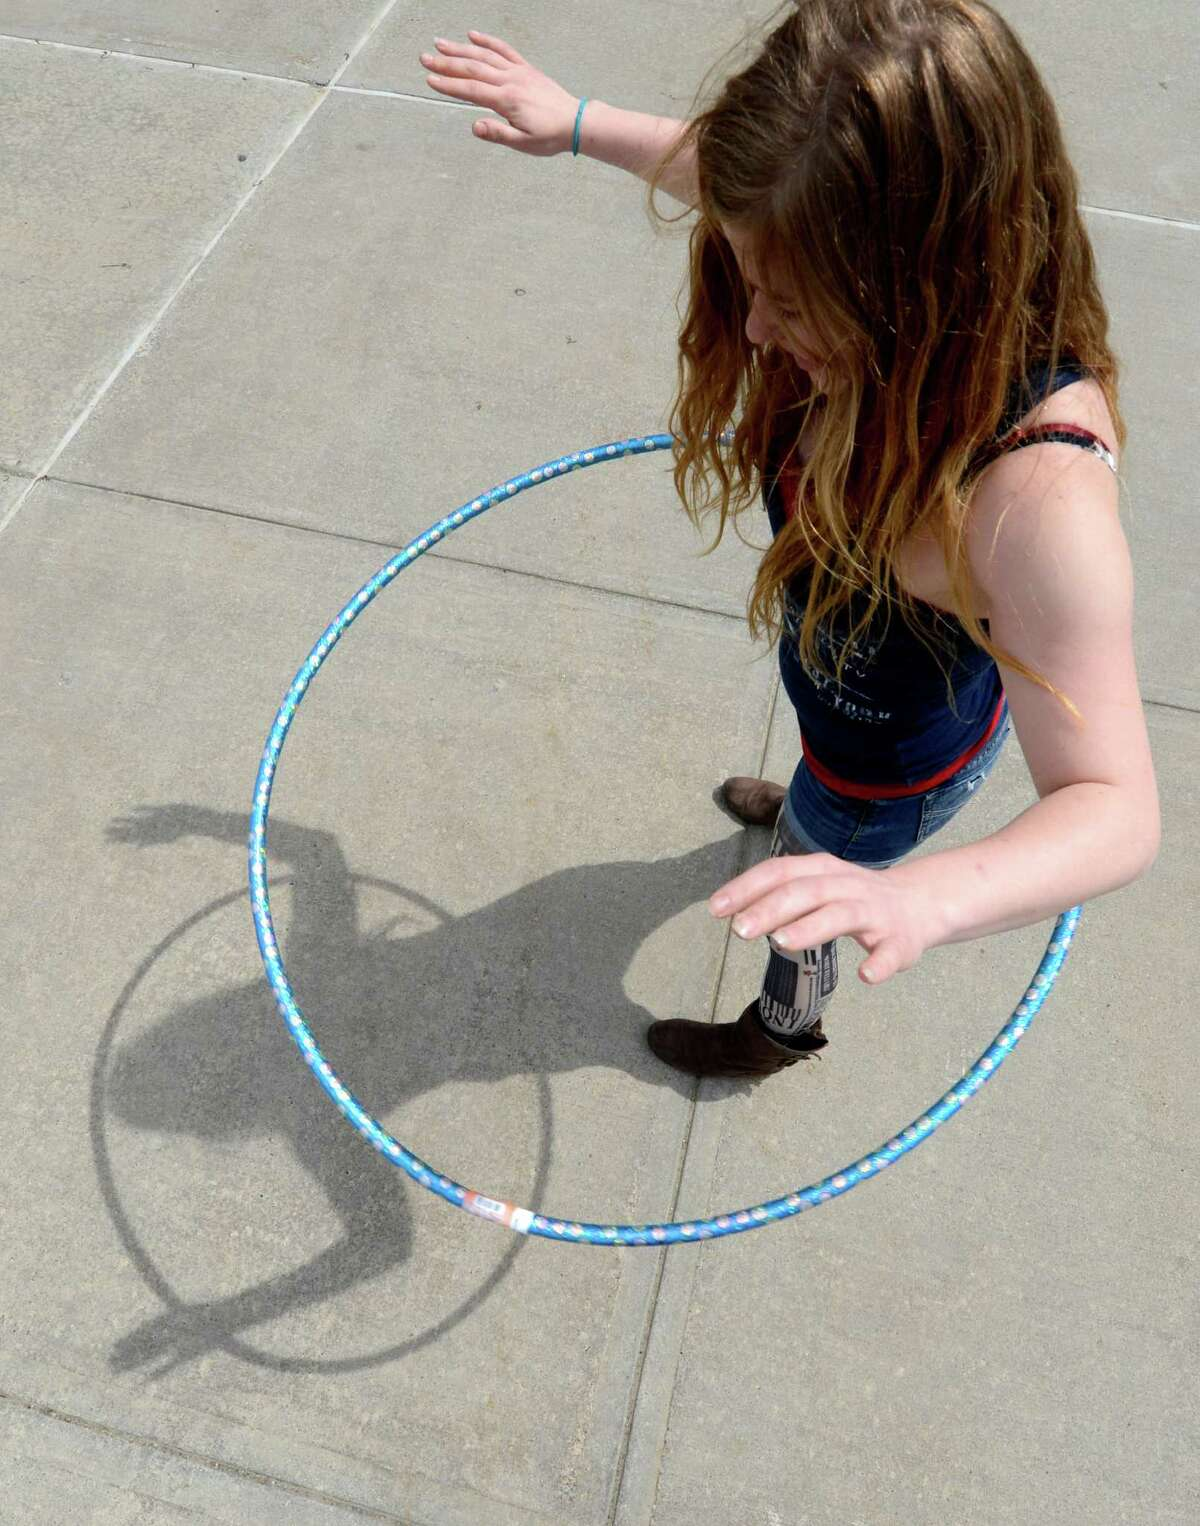 Elizabeth Kolvik 21 of Latham and a contestant in a hula hoop competition see her shadow during the warm up in the quad at Hudson Valley Community College Tuesday April 18, 2013 in Troy, N. Y. The competition was to twirl the hula hoop around your body and keep it moving around an obstacle course. There were very few takers in the contest. (Skip Dickstein/Times Union)